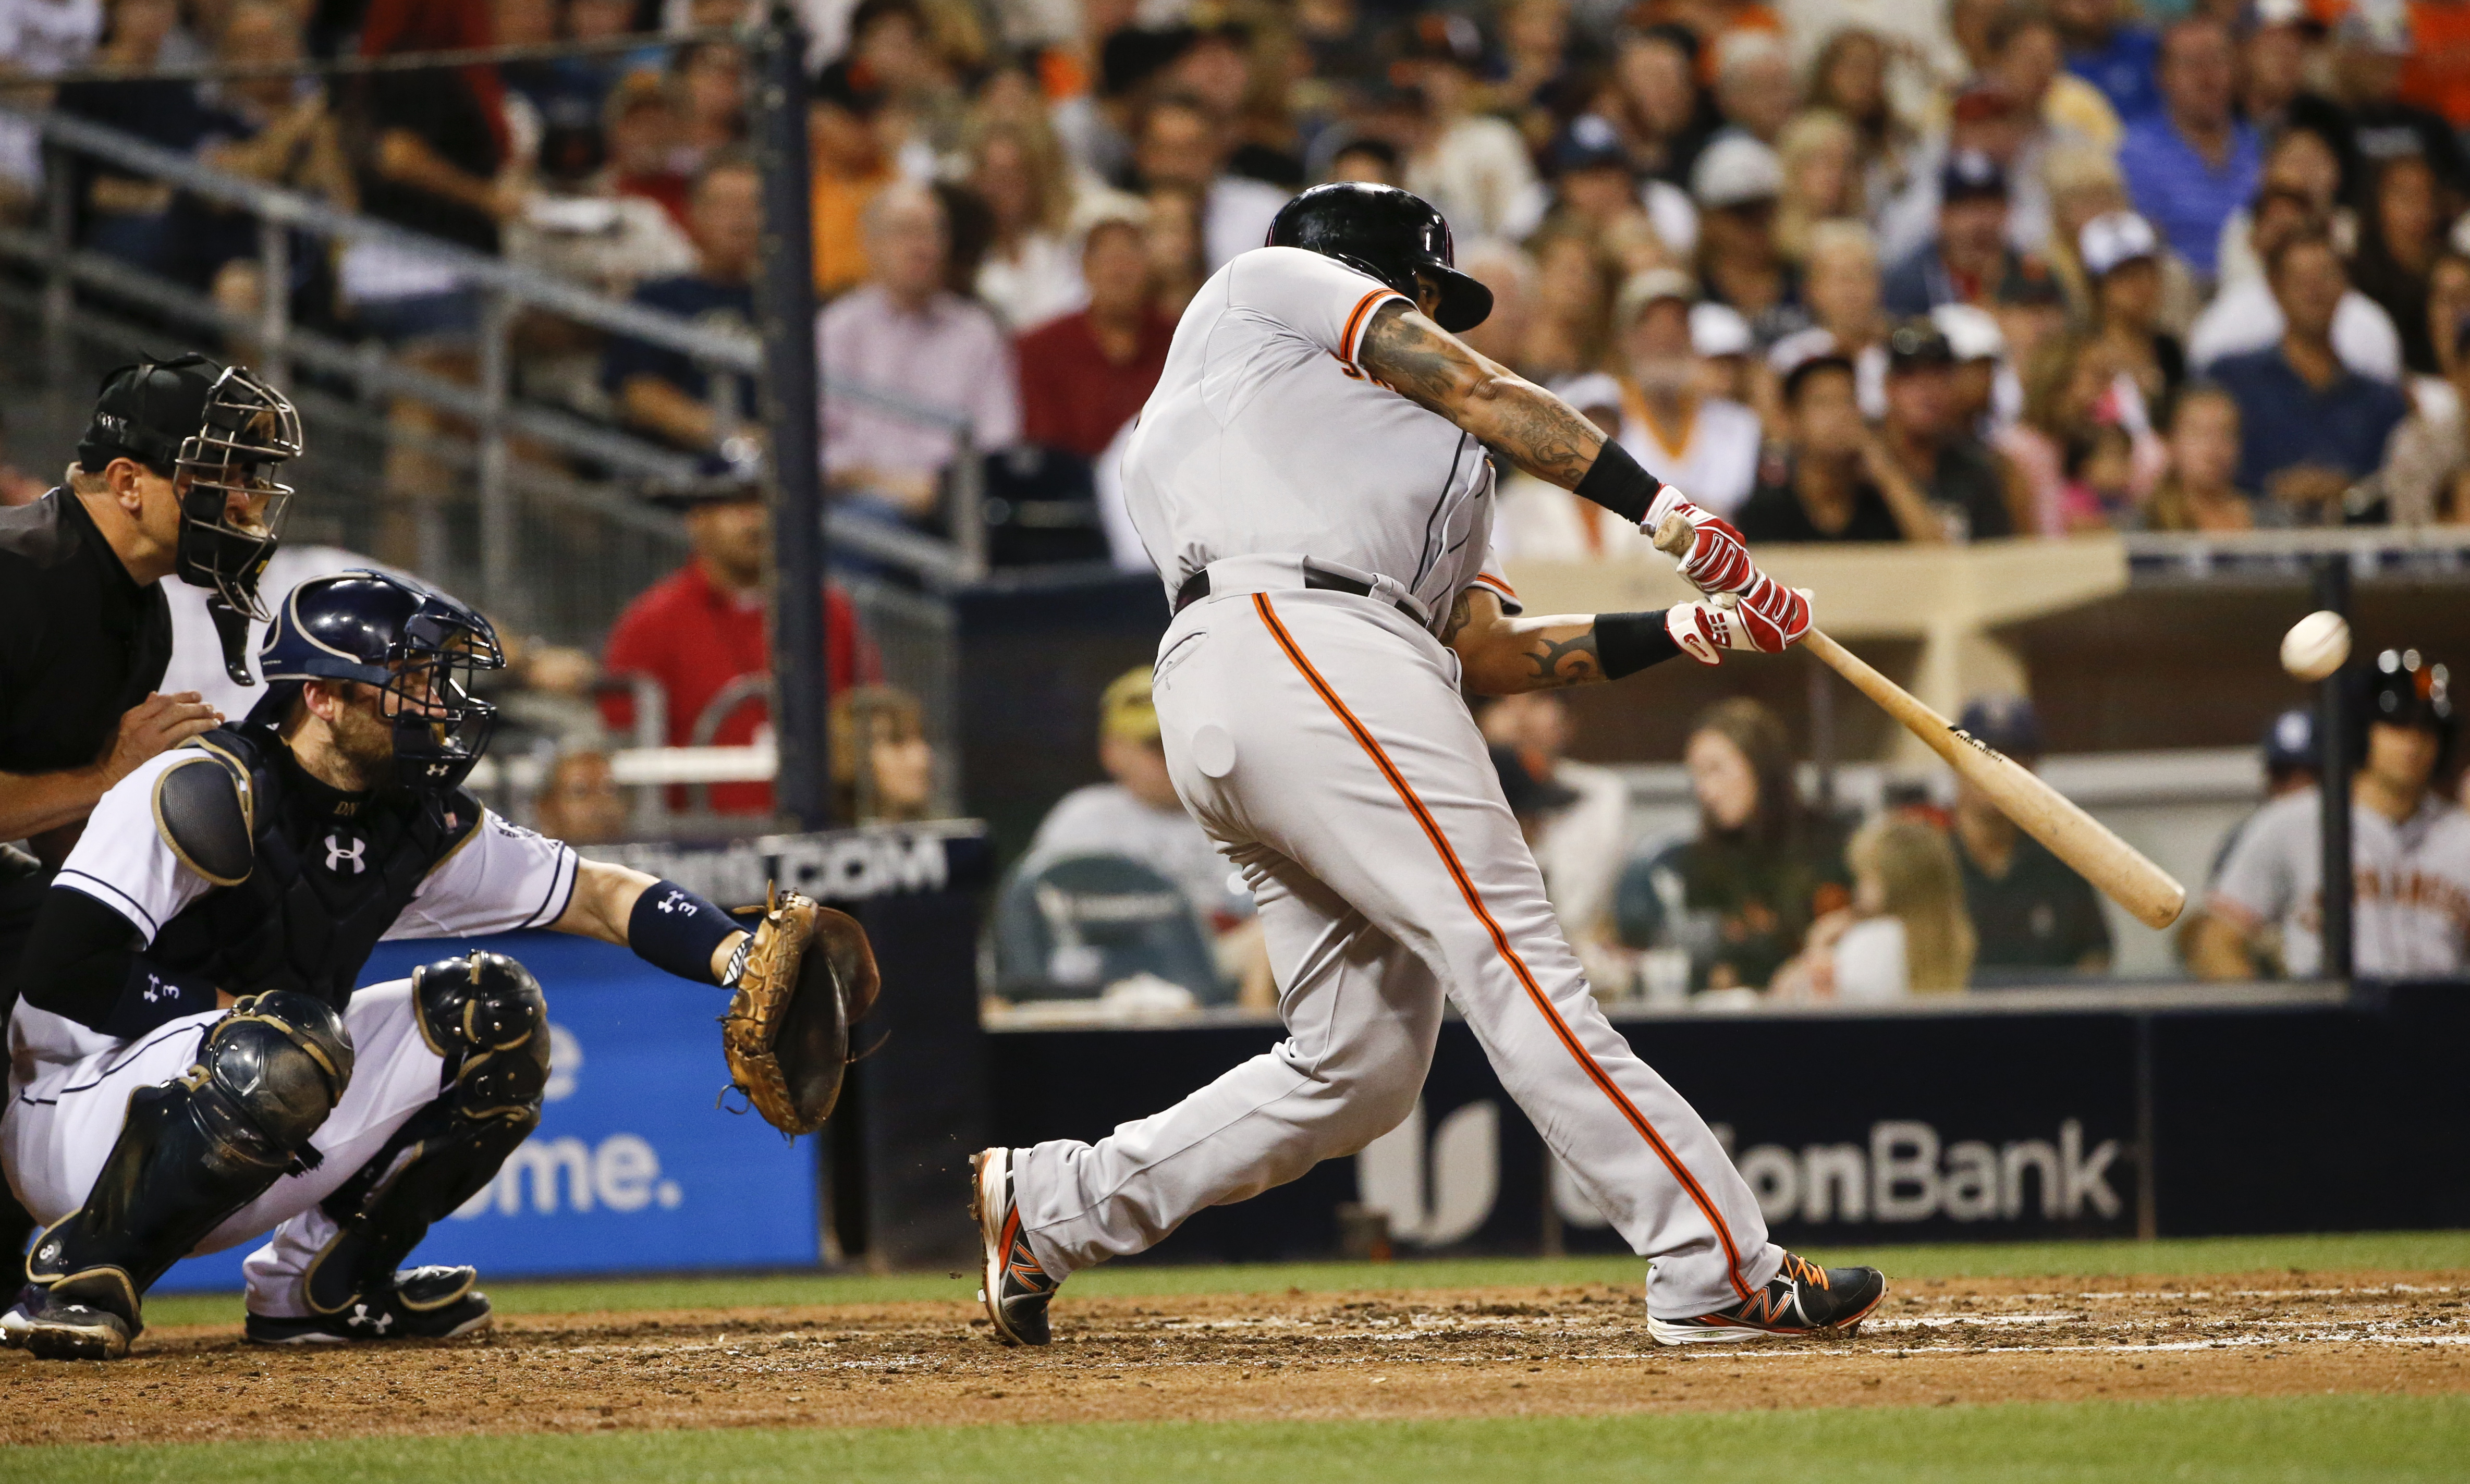 San Francisco Giants' Hector Sanchez swings on a grand slam against the San Diego Padres during the sixth inning of a baseball game Tuesday, July 21, 2015, in San Diego. The Padres had intentionally walked Gregor Blanco to pitch to Sanchez. (AP Photo/Lenn